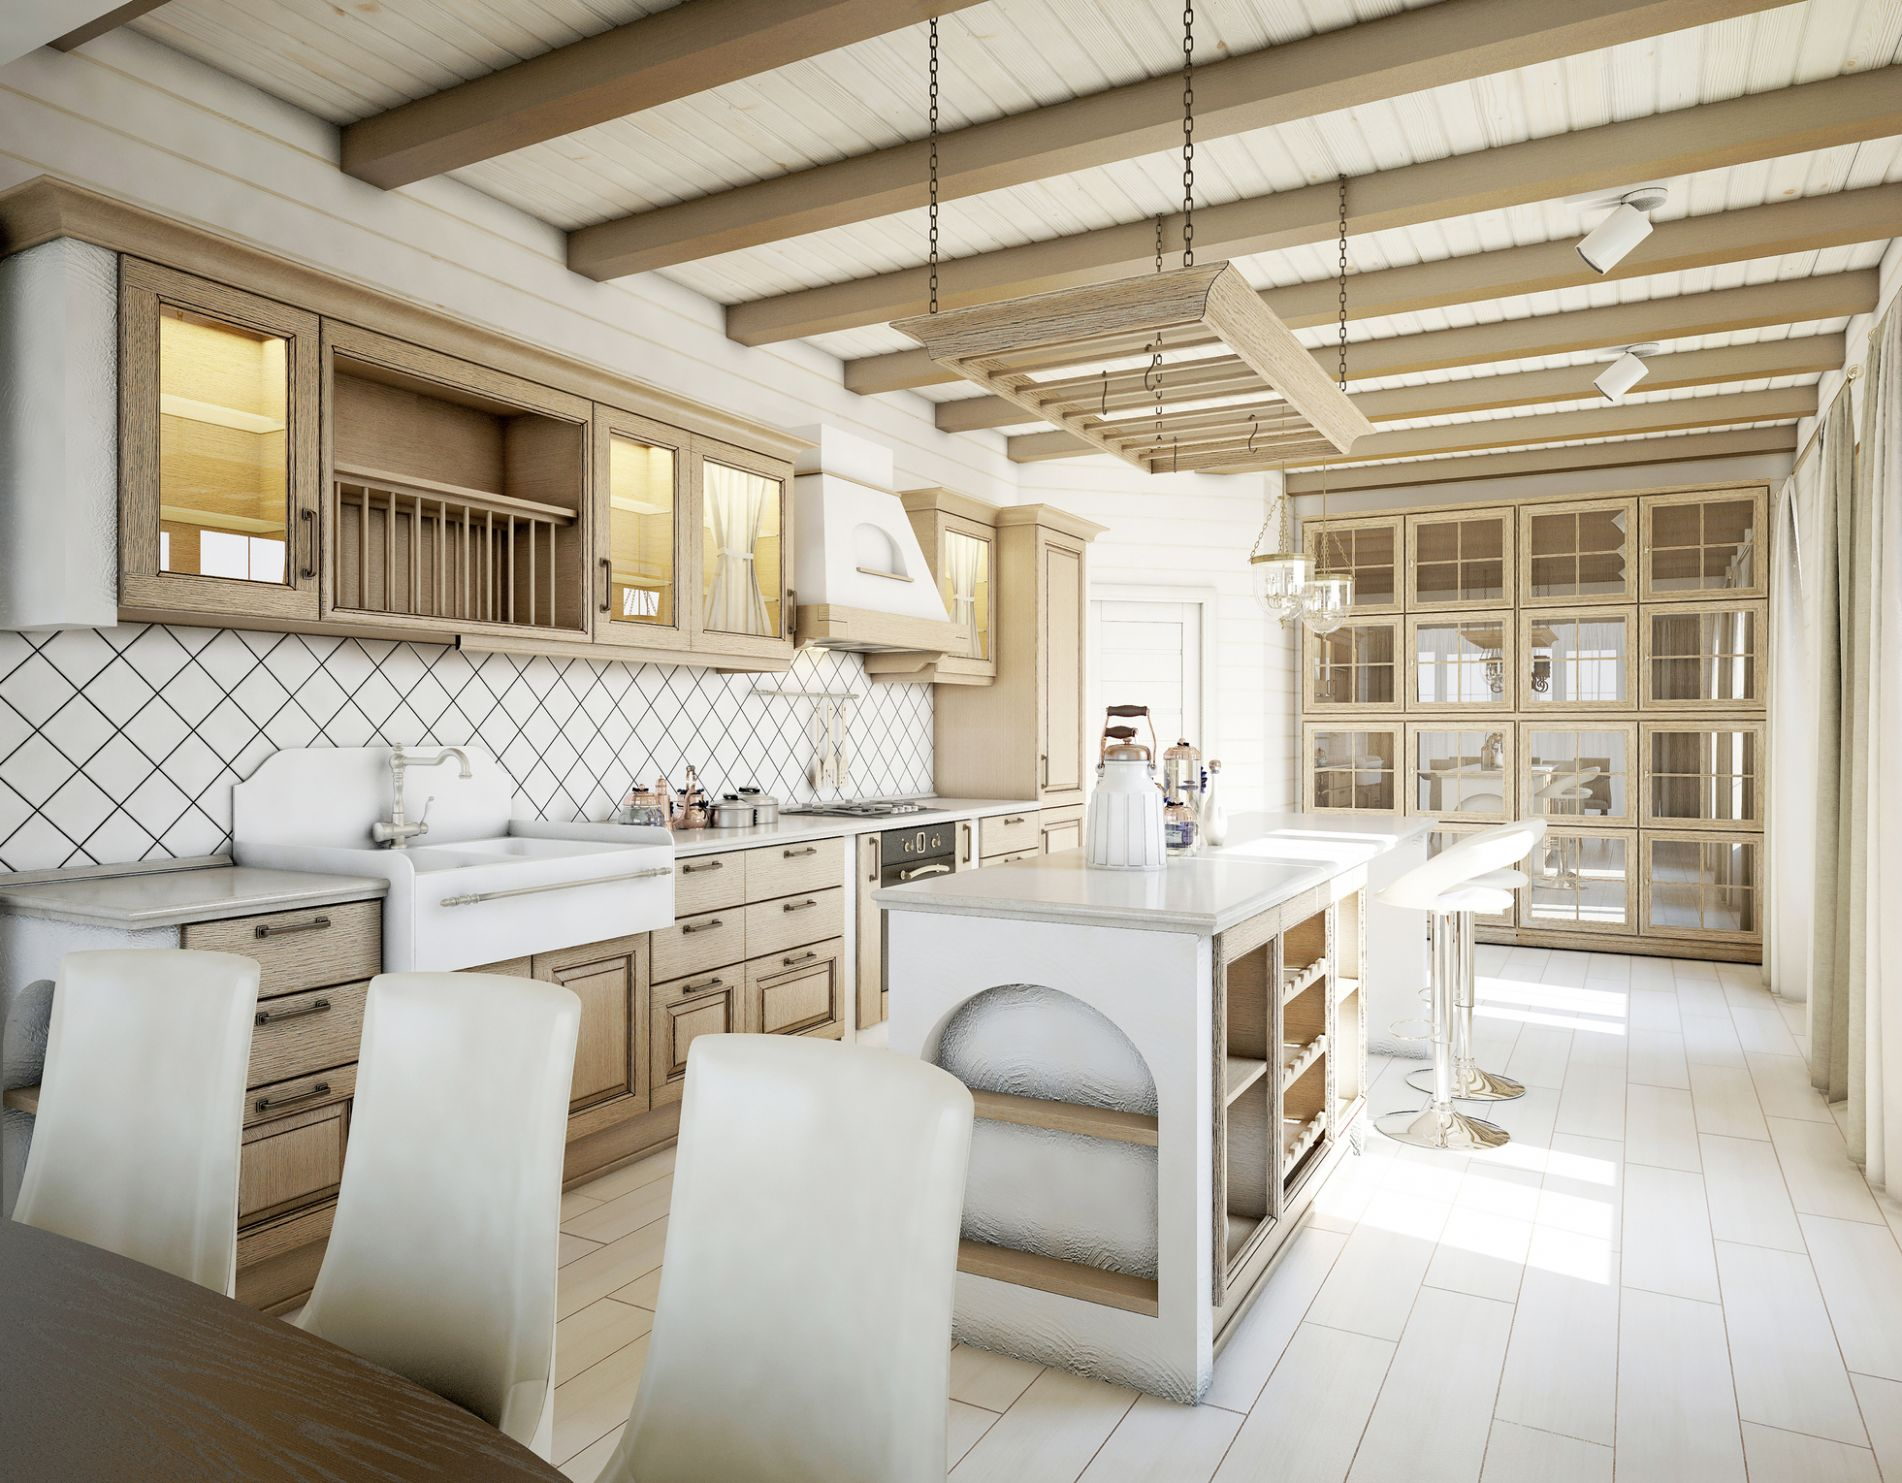 Here Are 8 Modern Farmhouse Kitchen Ideas to Inspire You